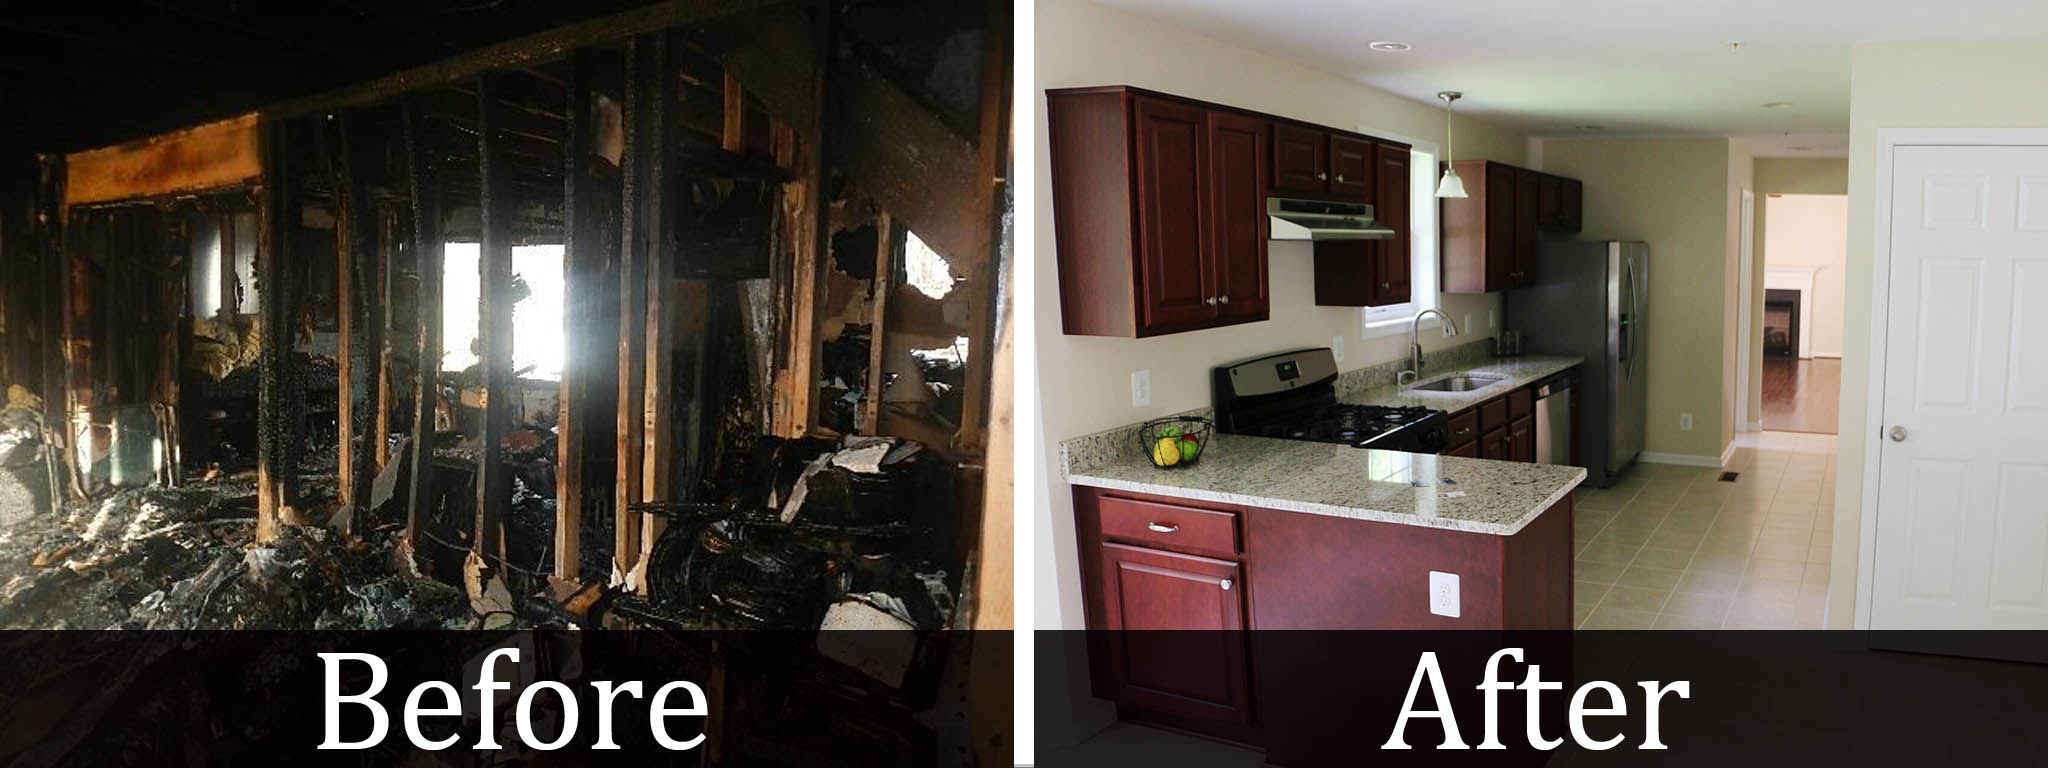 Jenkins Kitchen Fire Damage Restoration - Rockville MD